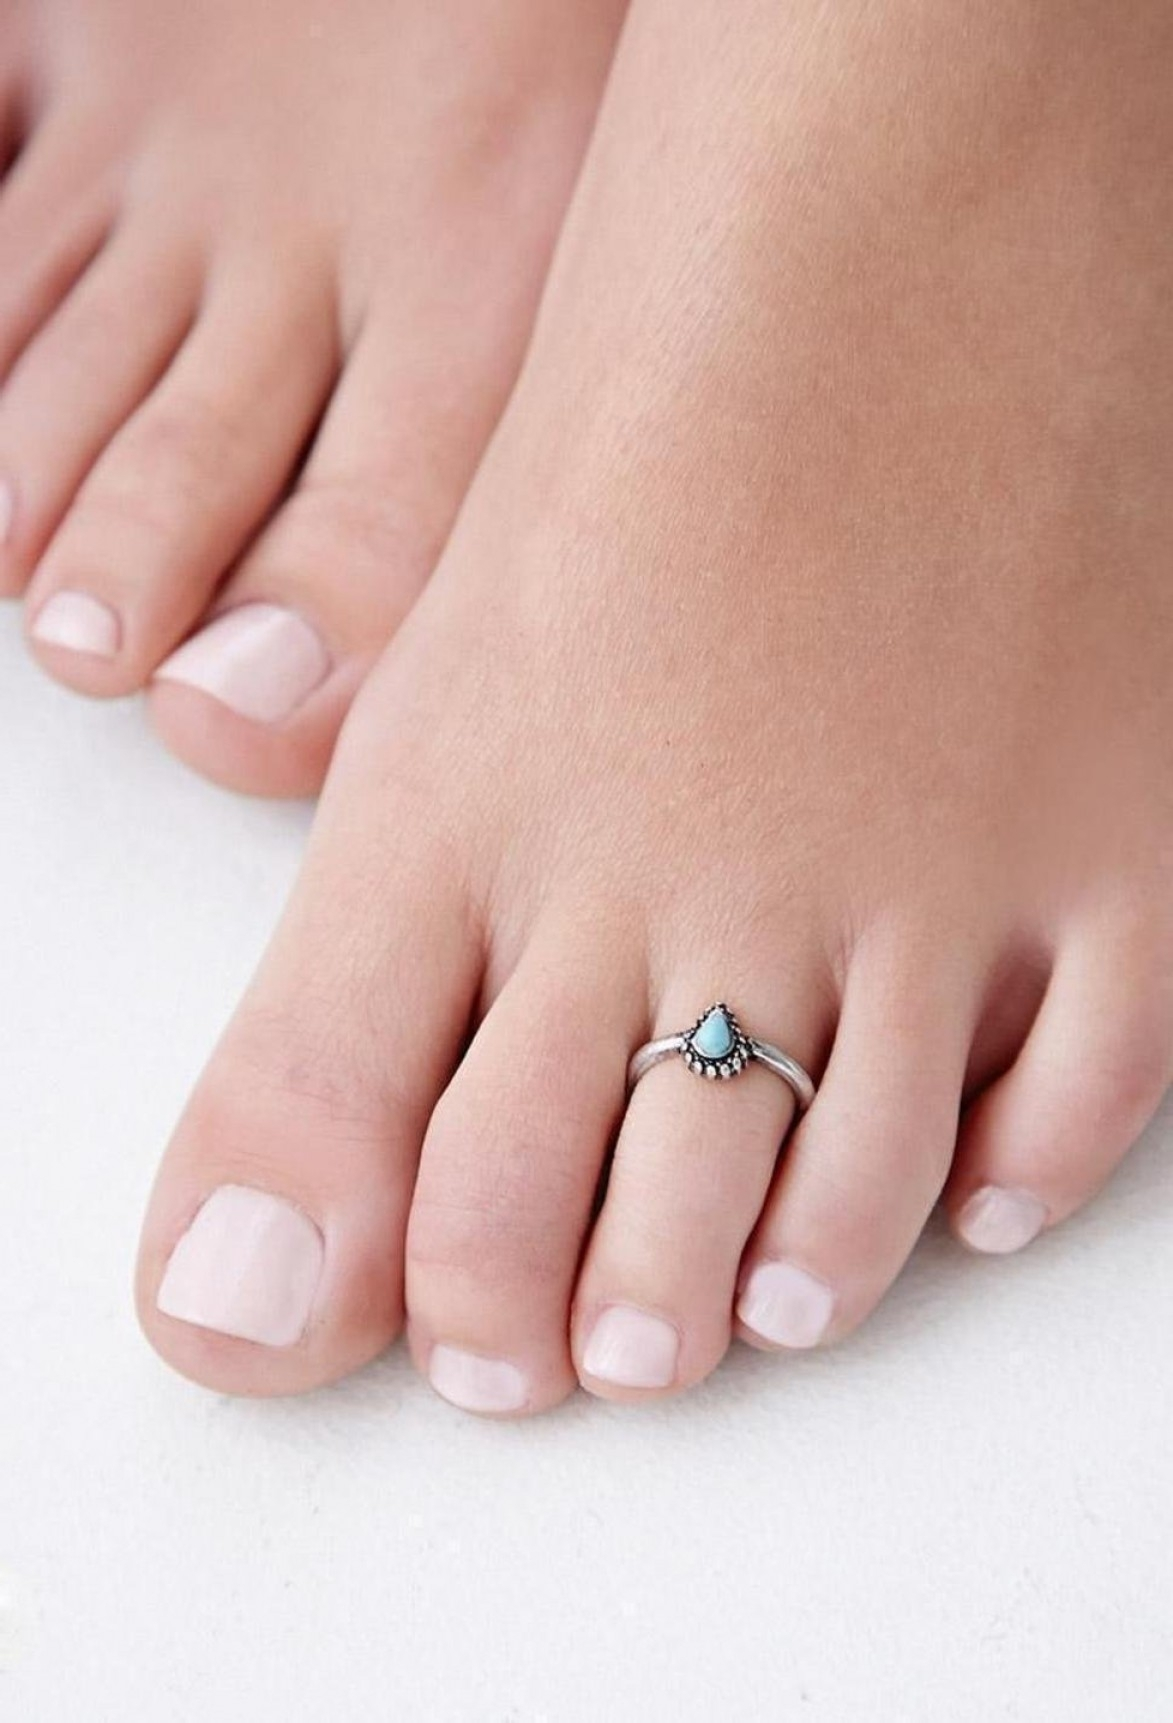 Affordable & Comfortable Toe Rings For Women | Trends4Us Regarding Most Popular Double Toe Rings (Gallery 9 of 15)